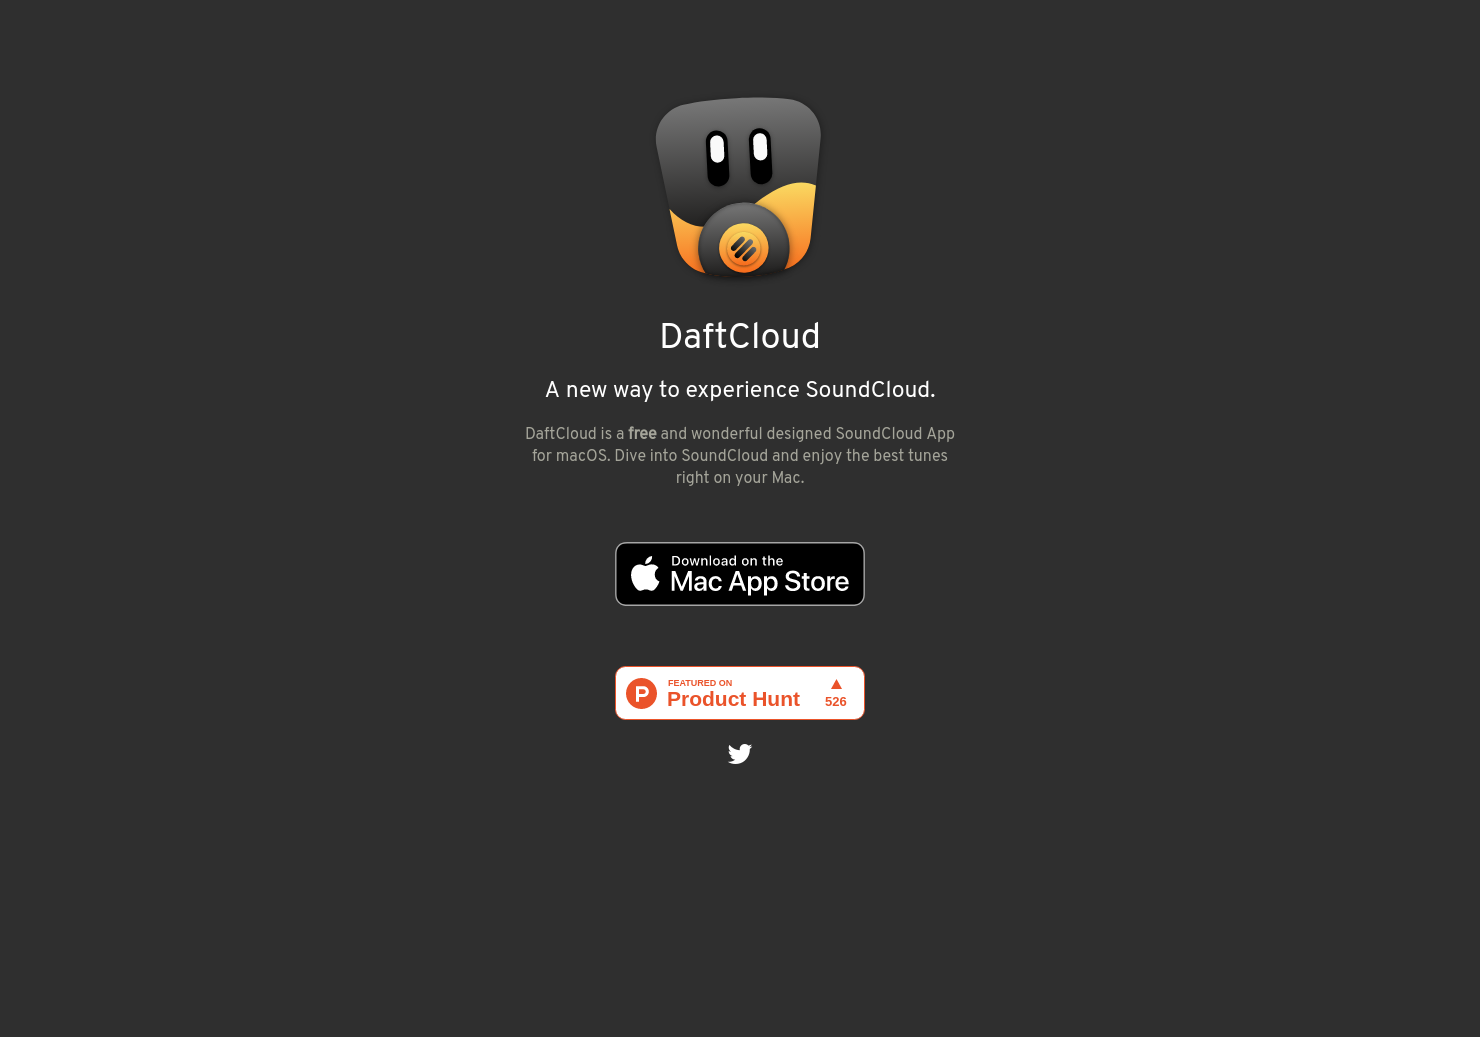 DaftCloud for Watch